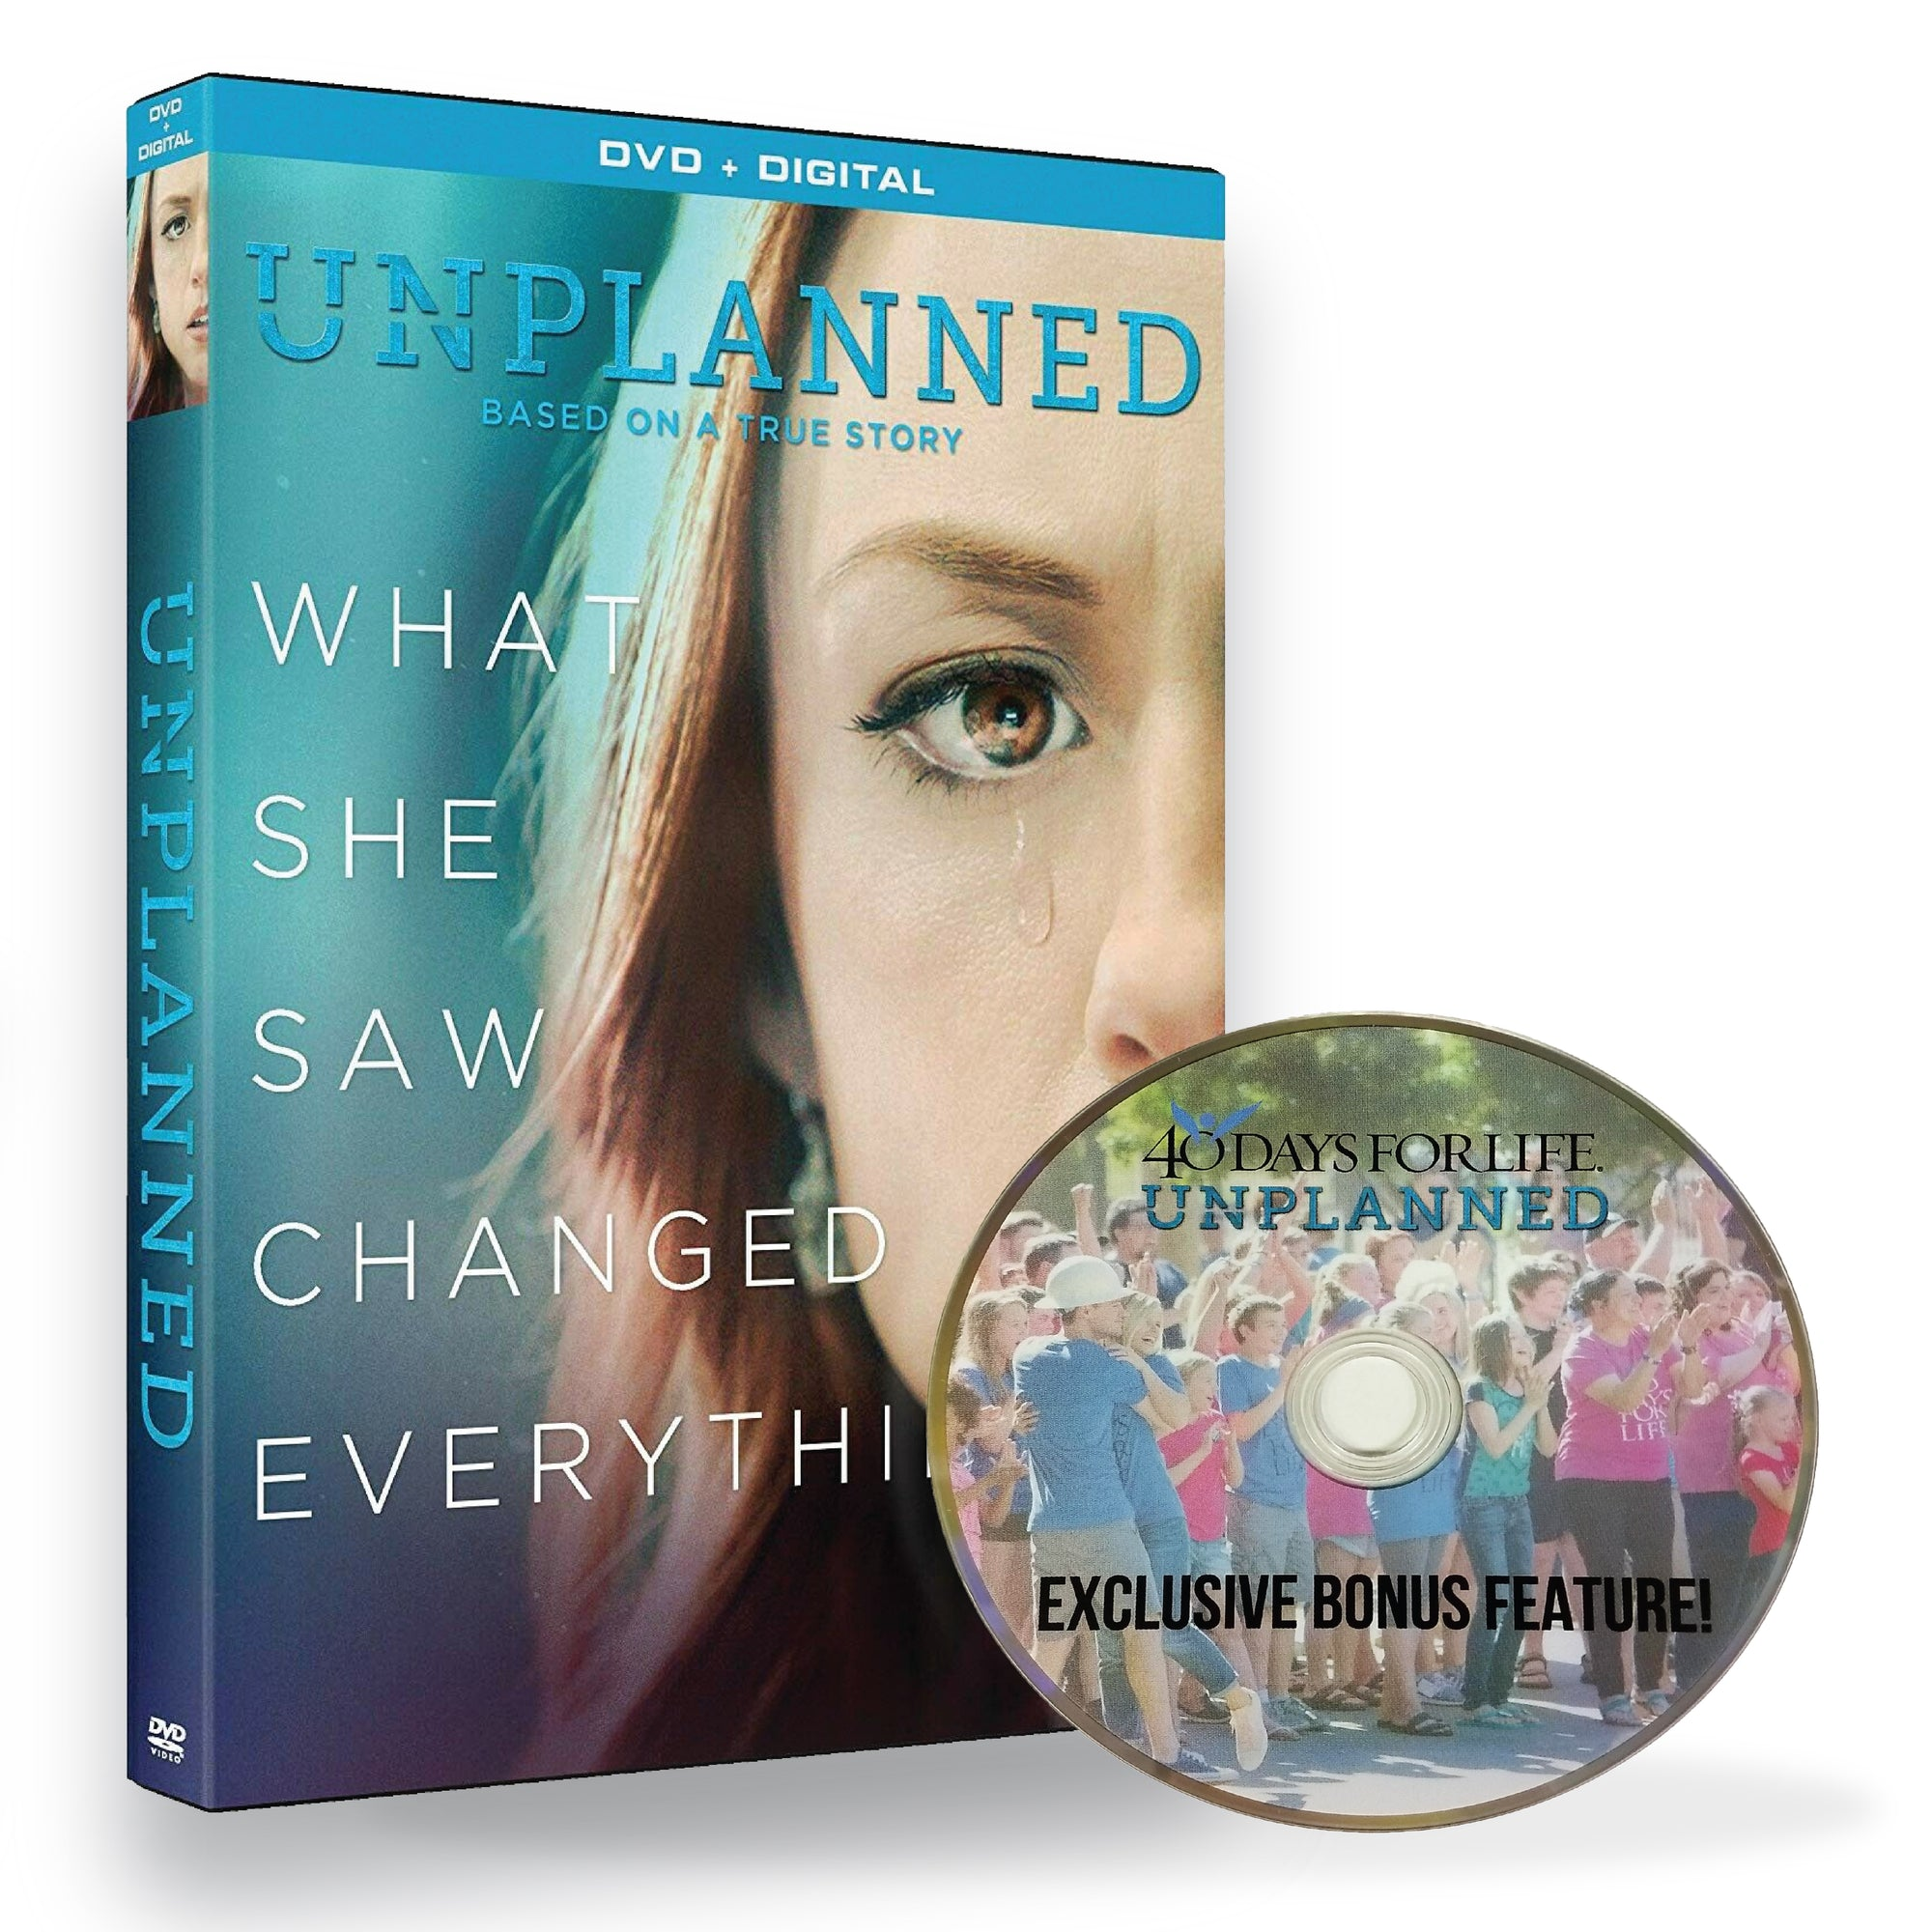 Unplanned with Bonus DVD (4595967492182)